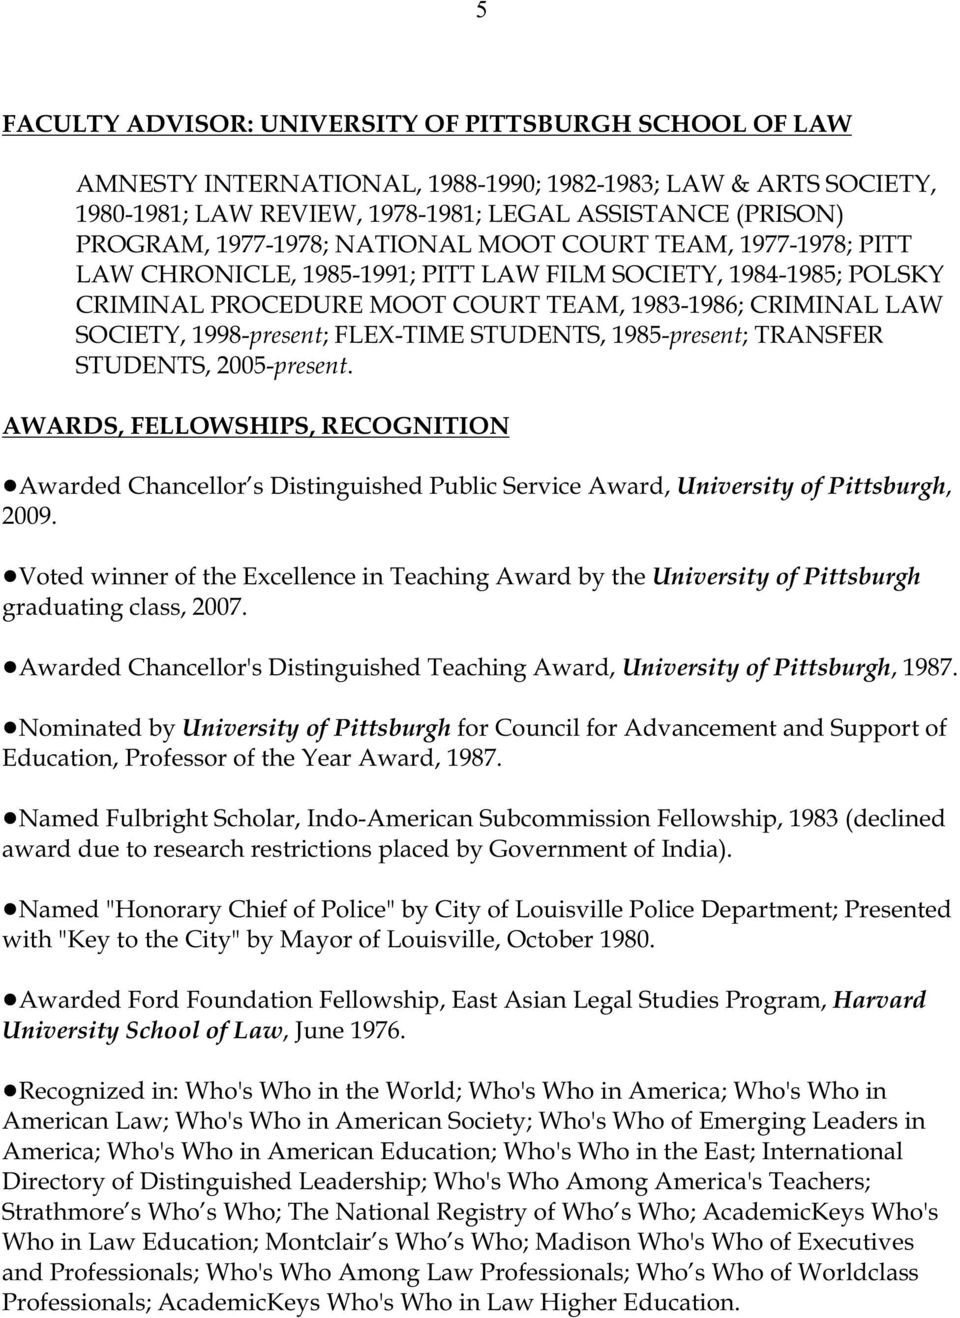 1998-present; FLEX-TIME STUDENTS, 1985-present; TRANSFER STUDENTS, 2005-present. AWARDS, FELLOWSHIPS, RECOGNITION!